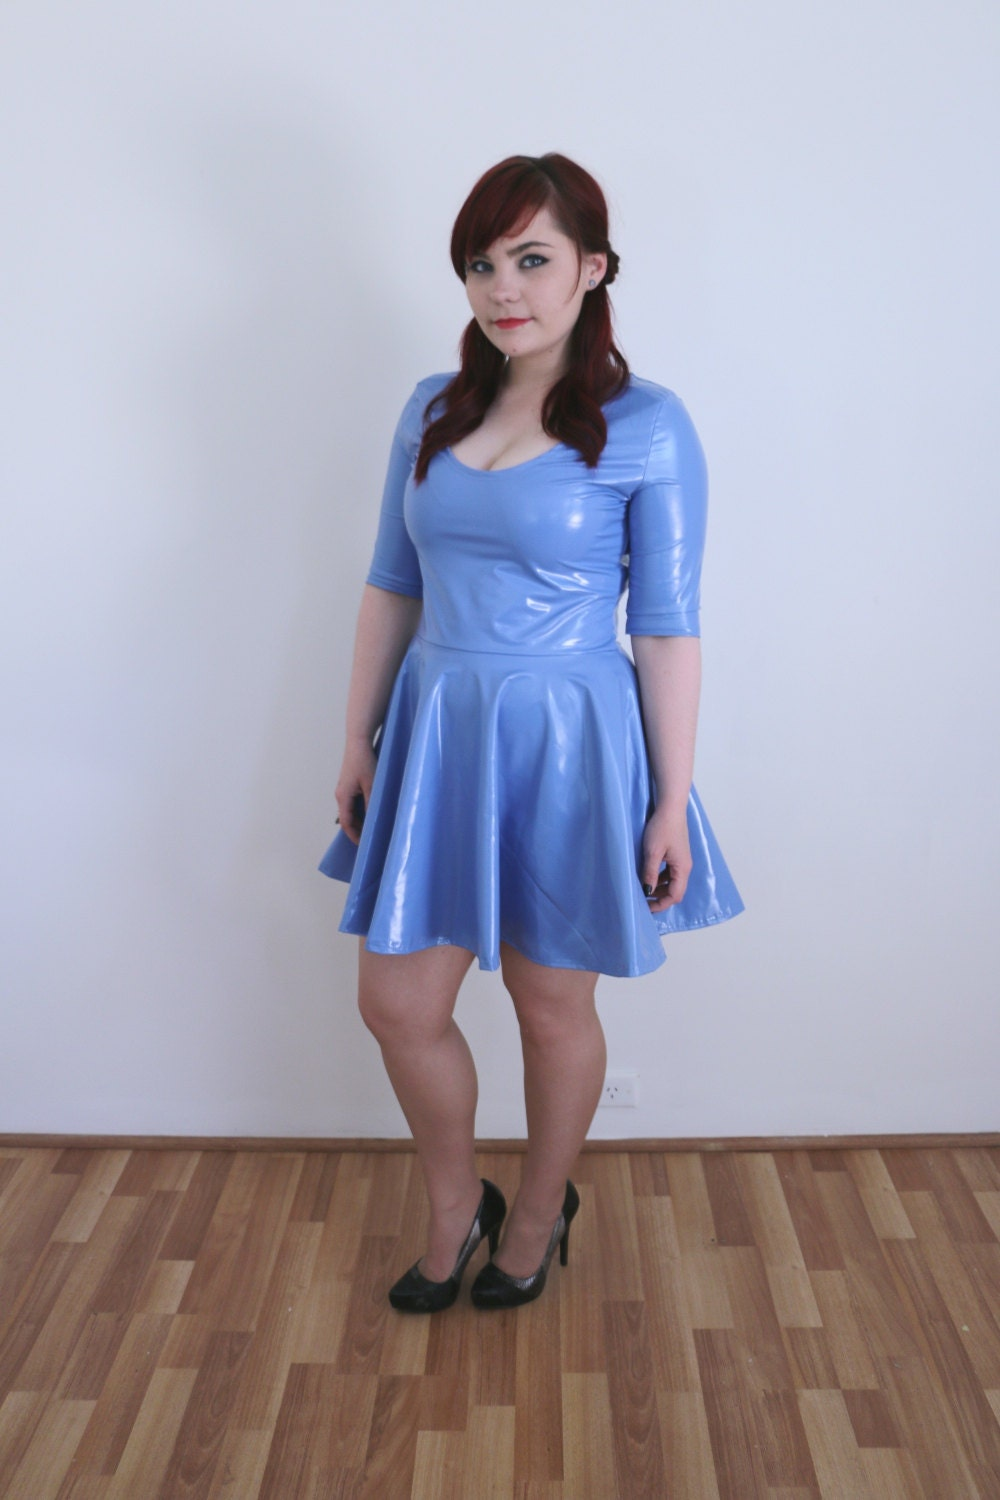 Blue Vinyl Skater Dress Pvc Handmade Circle Skirt